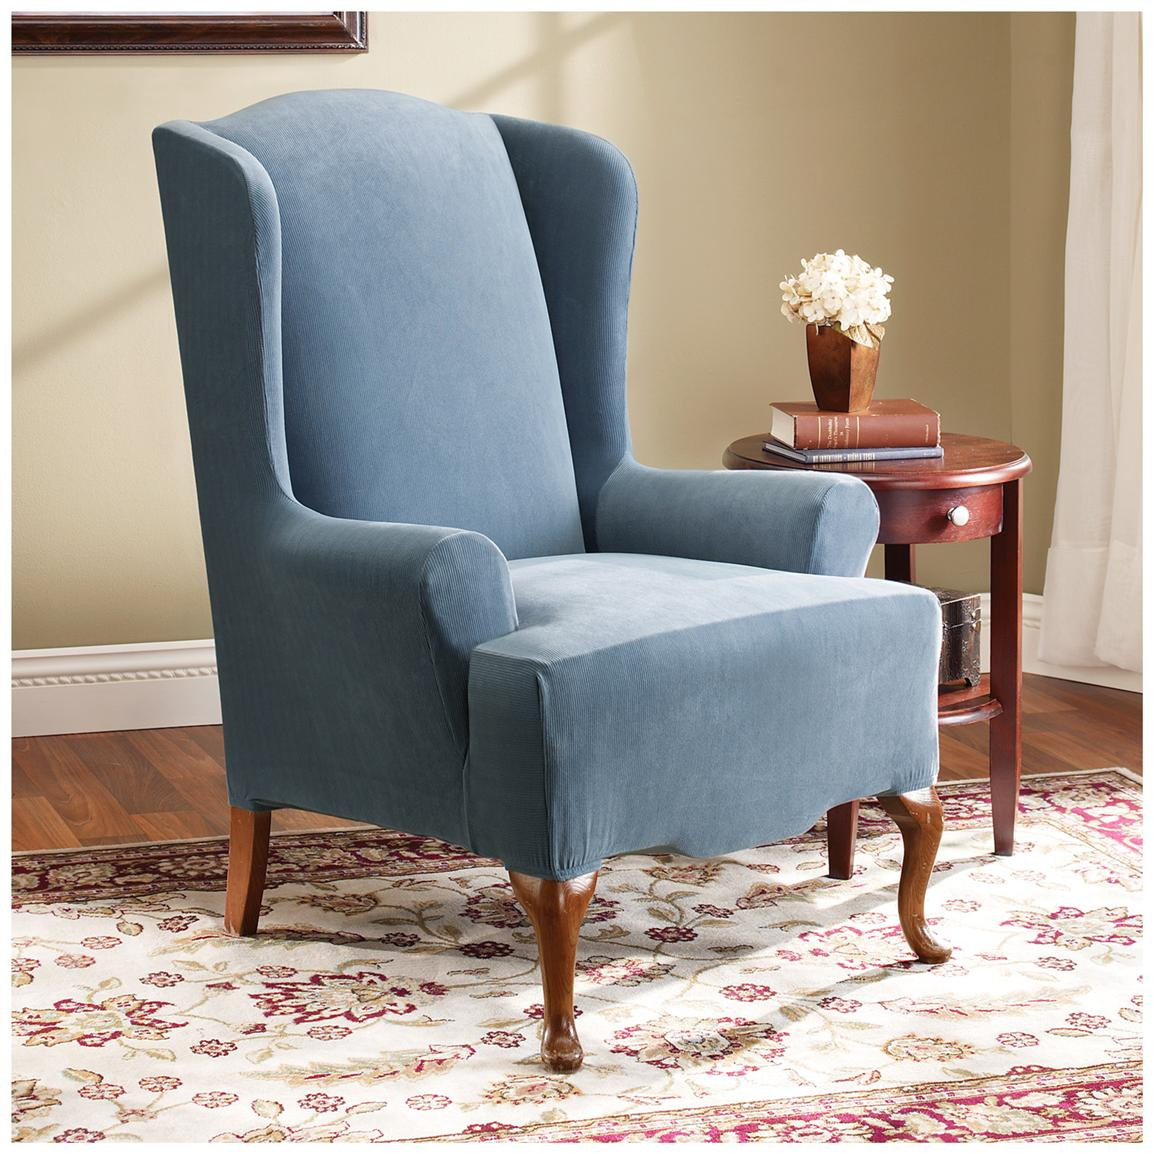 Best ideas about Sure Fit Chair Covers . Save or Pin Sure Fit Stretch Pearson Wing Chair Slipcover Now.